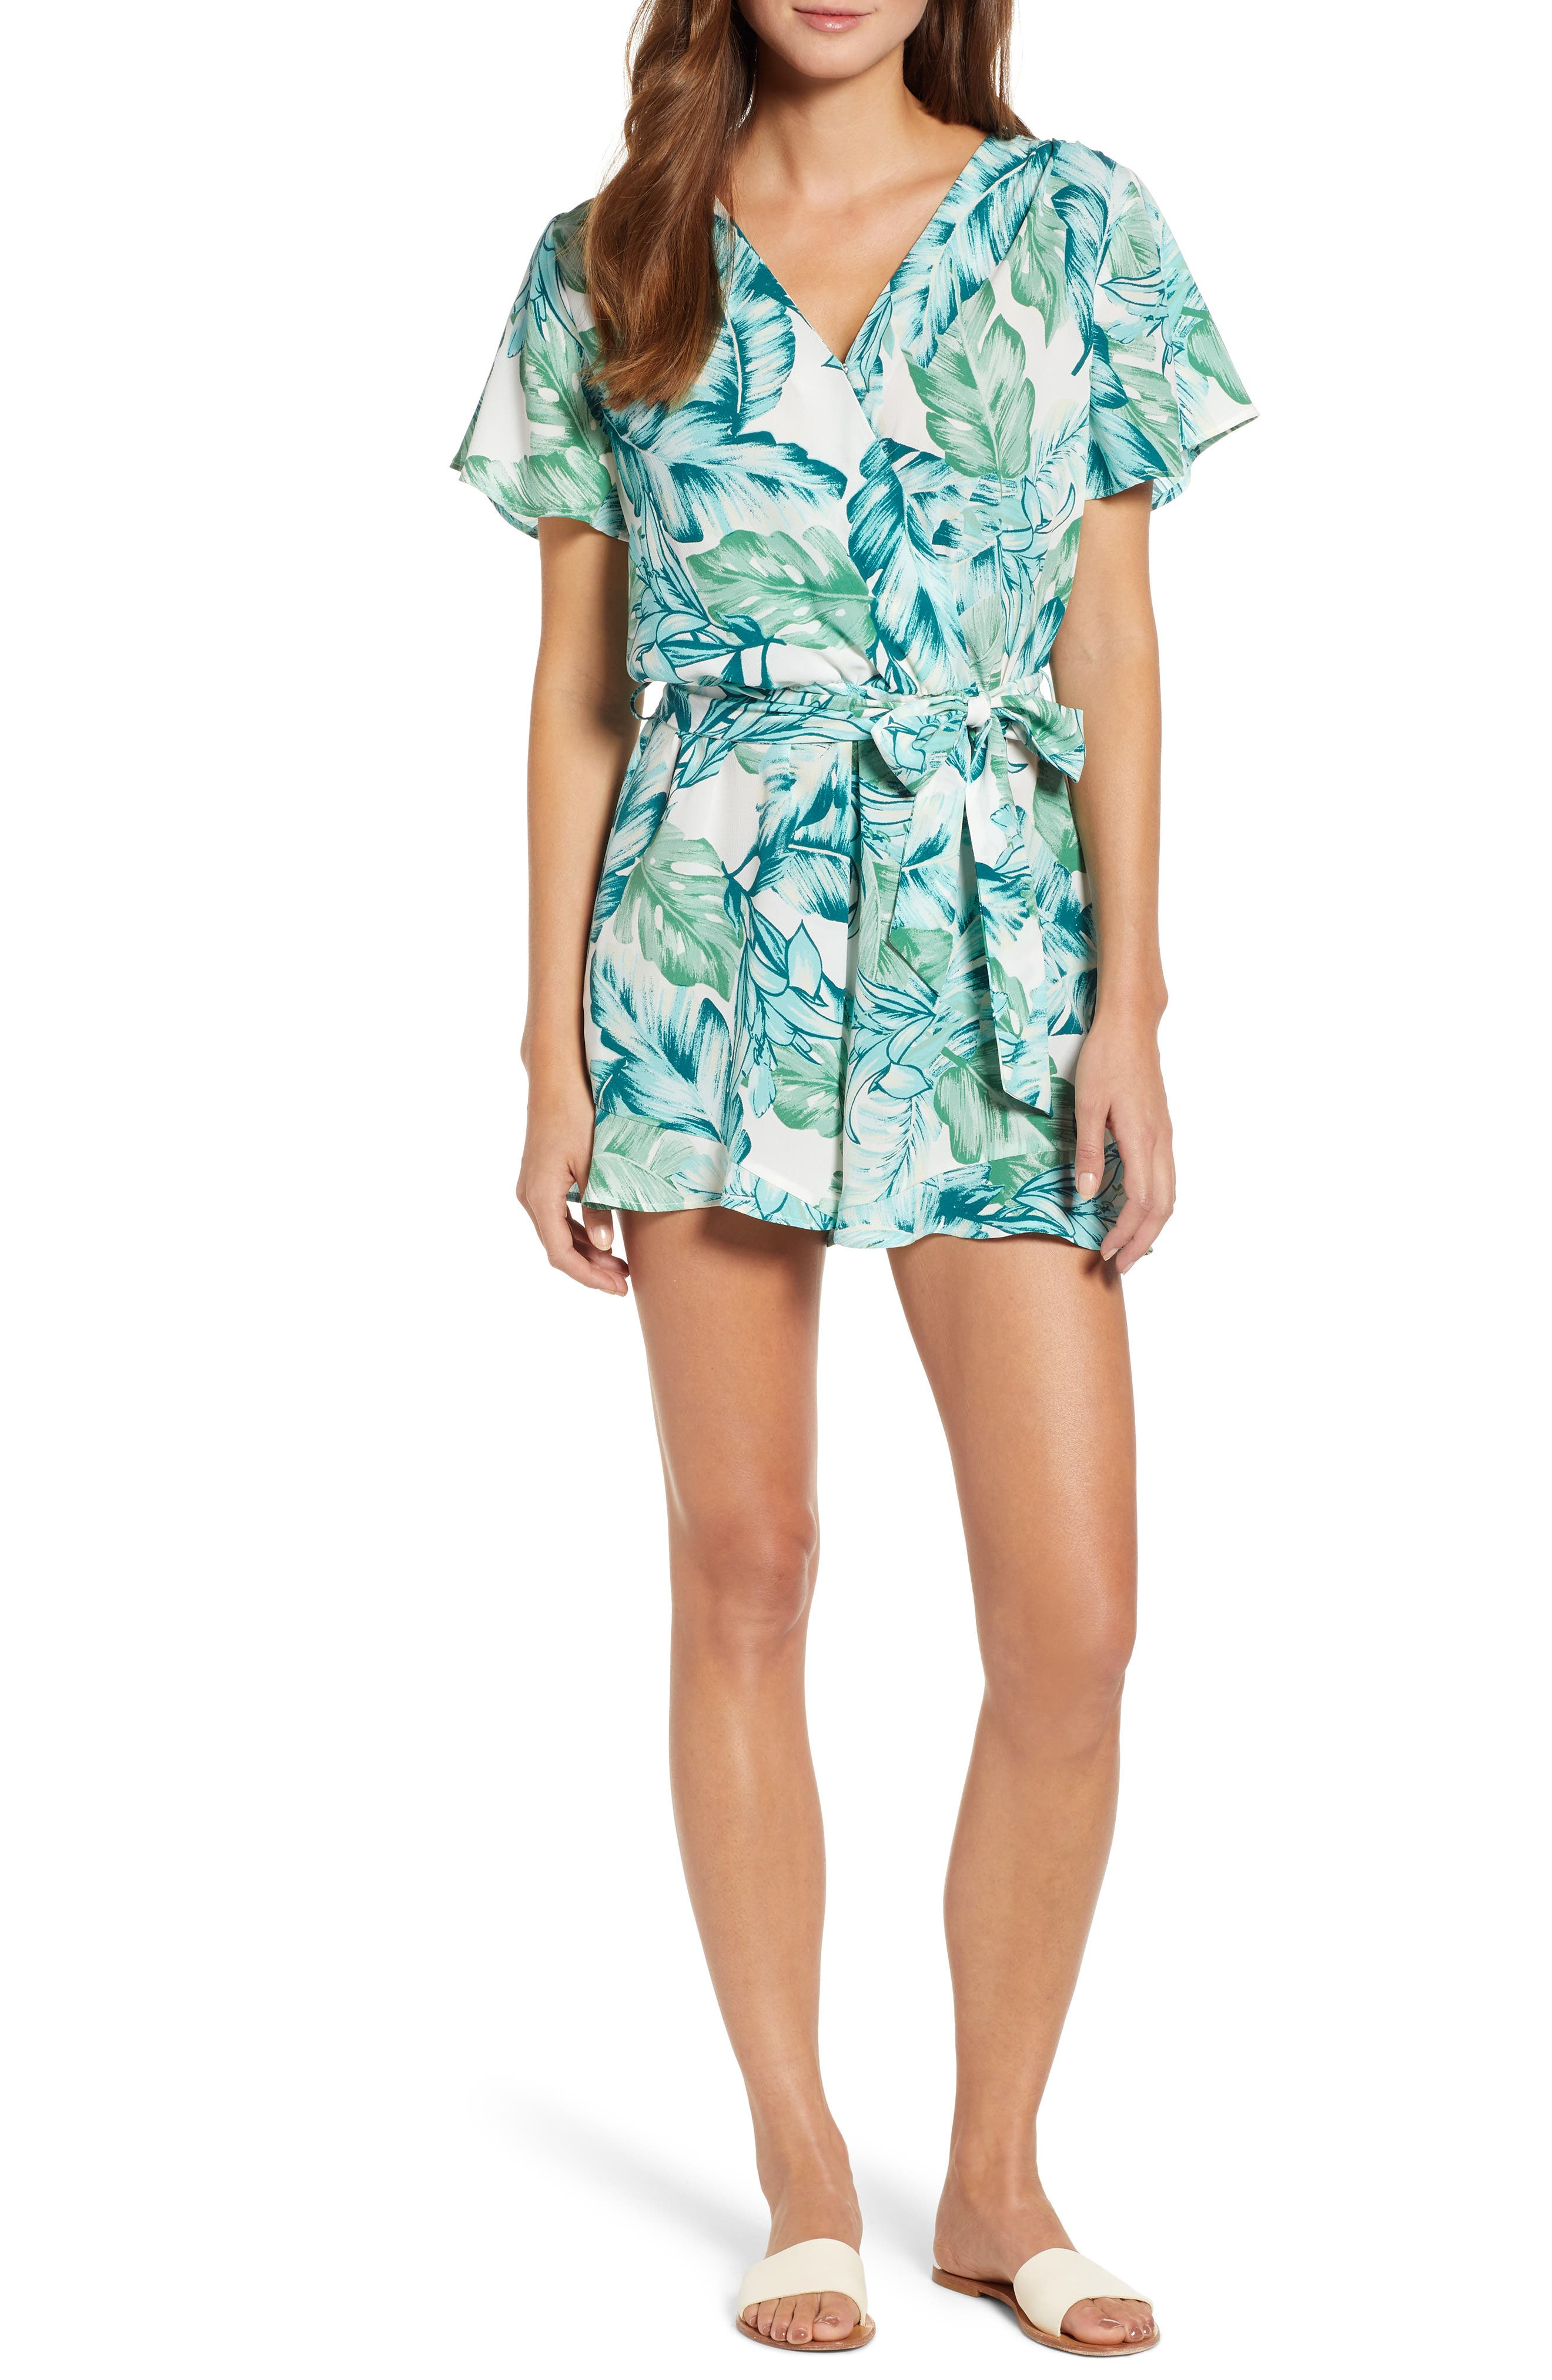 GIBSON x Hi Sugarplum! Catalina Ruffle Hem Romper, Main, color, PALM